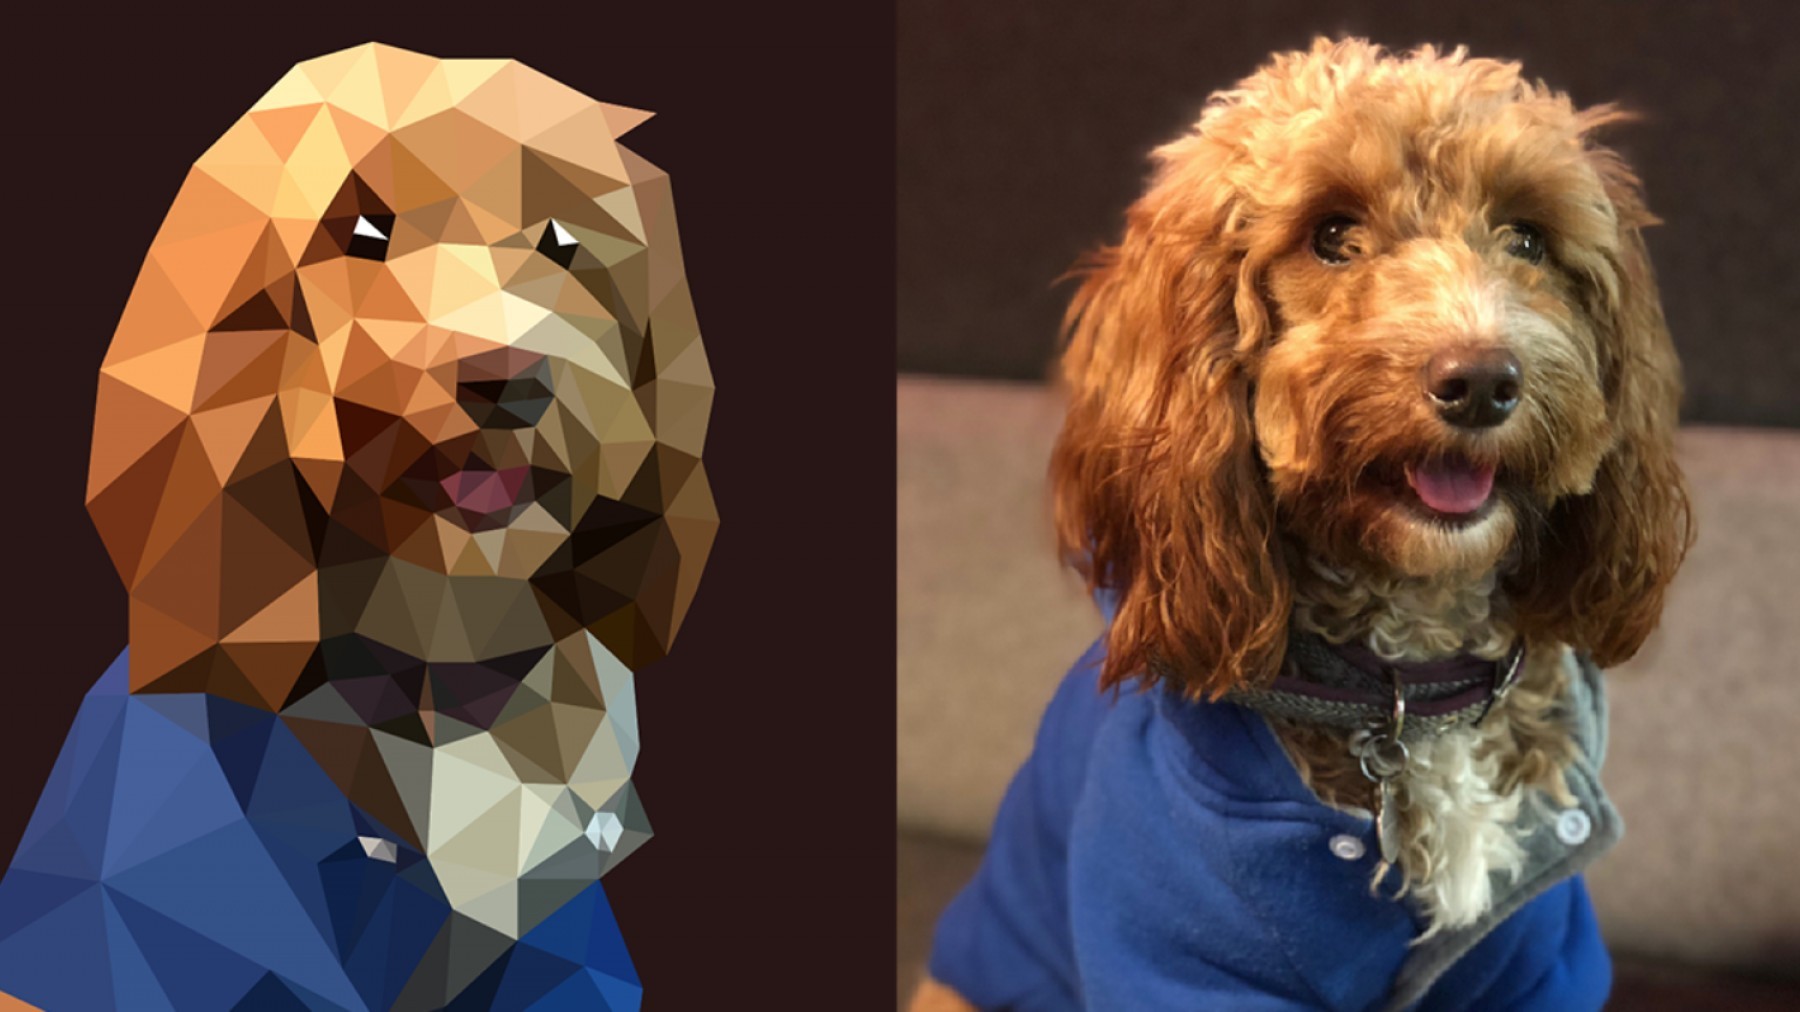 Goldendoodle Vector SVG: How To Create Low Poly Art In Adobe Illustrator